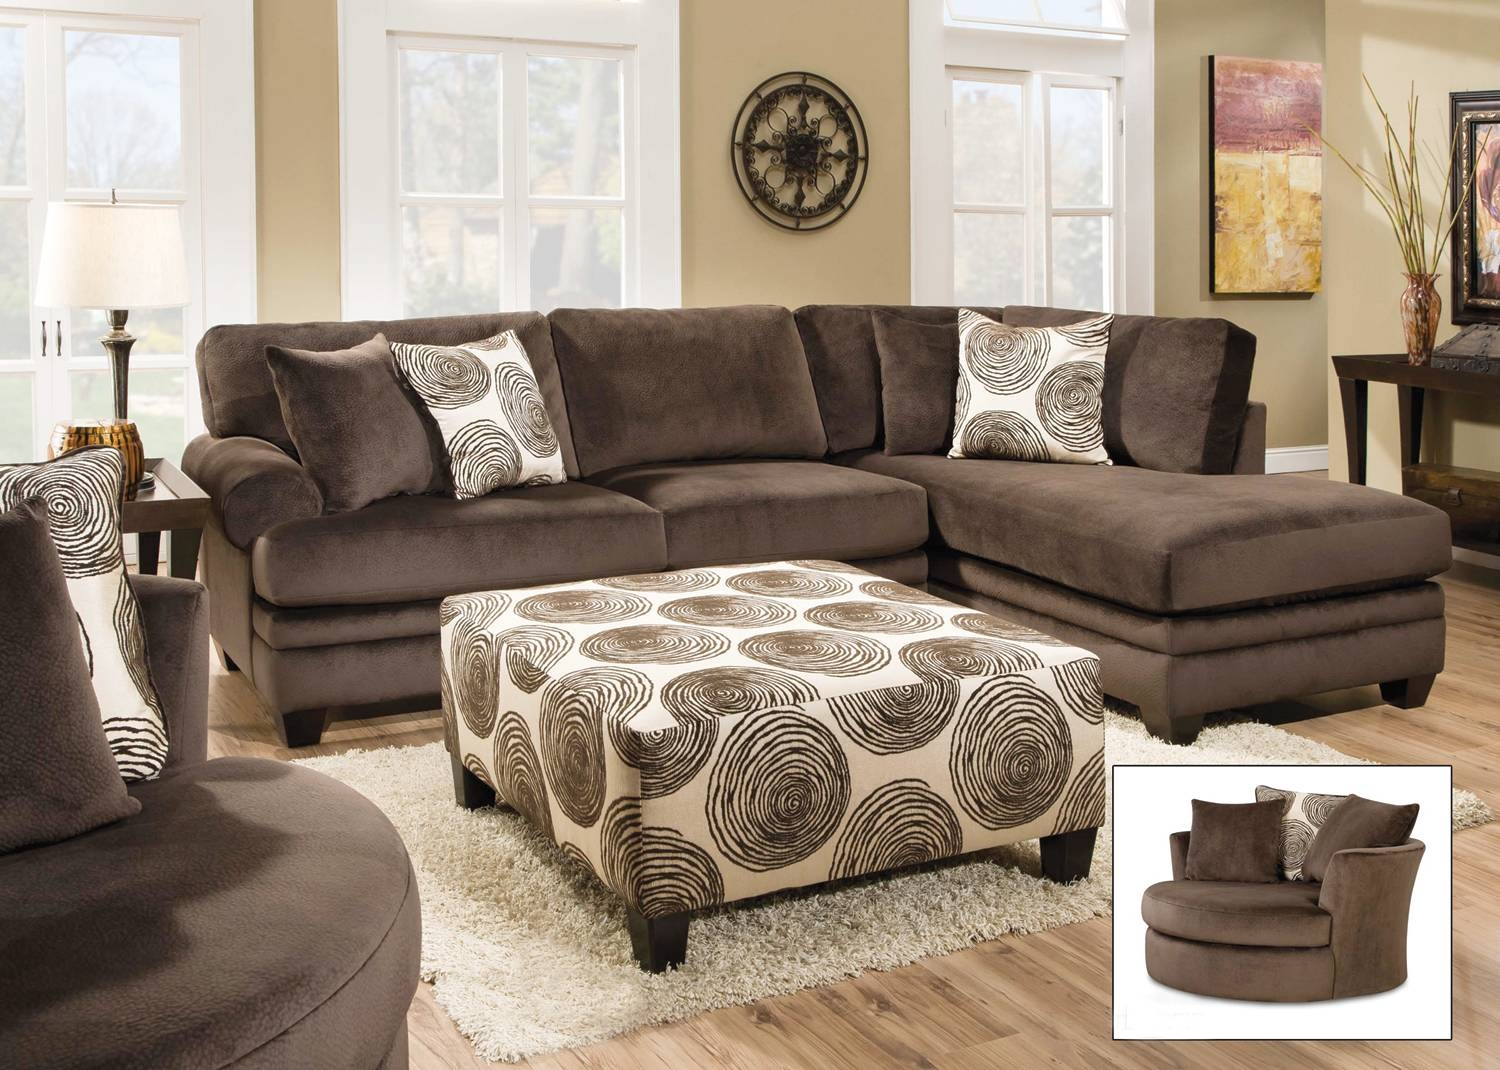 Furniture Home : Sofas Sectionals Stylish Big Lots Sofa Sleeper intended for Big Lots Sofa Sleeper (Image 12 of 30)